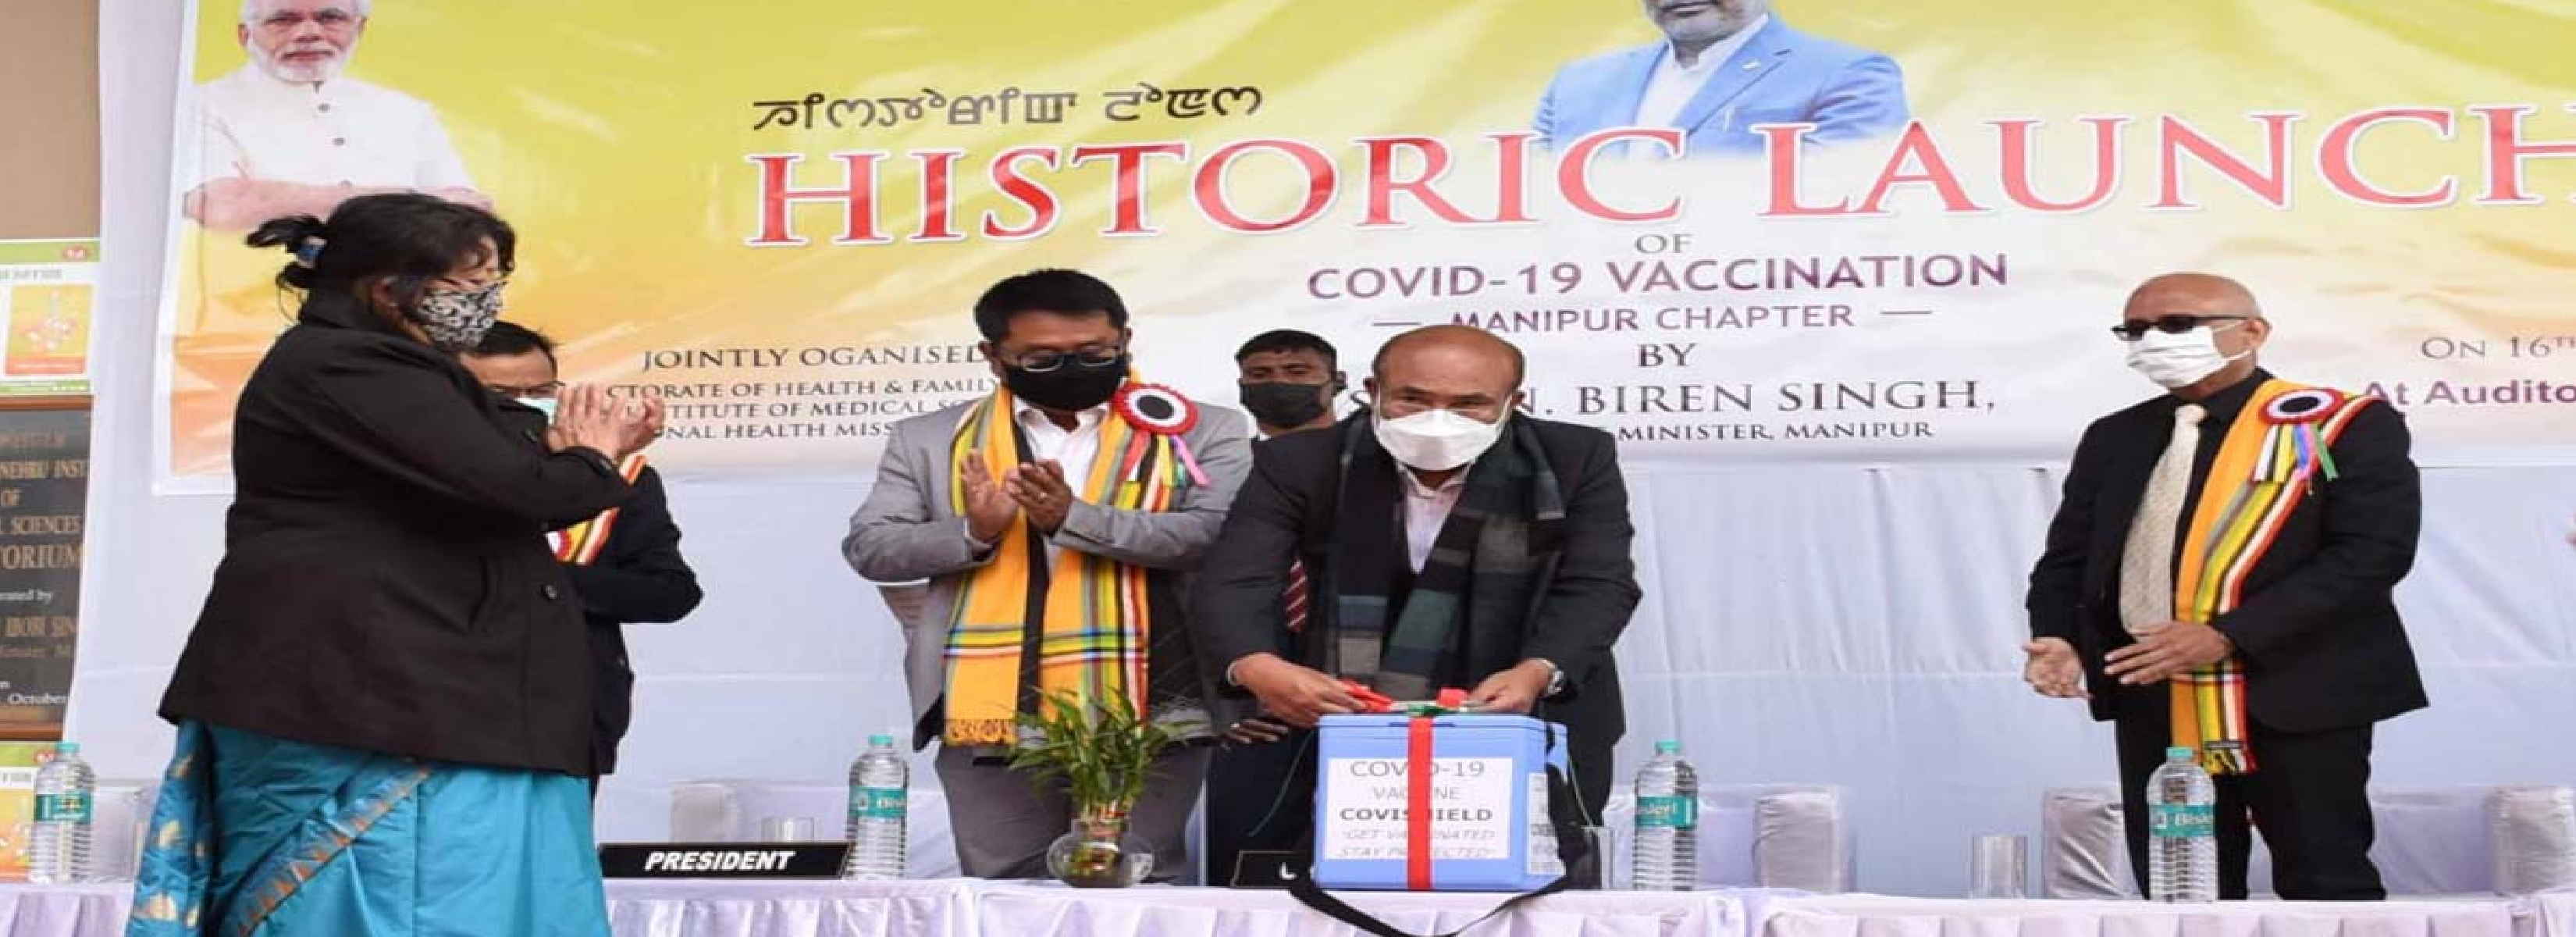 Historic Launce of COVID-19 Vaccination Manipur Chapter By N. Biren Singh , Chief Minister, Manipur.